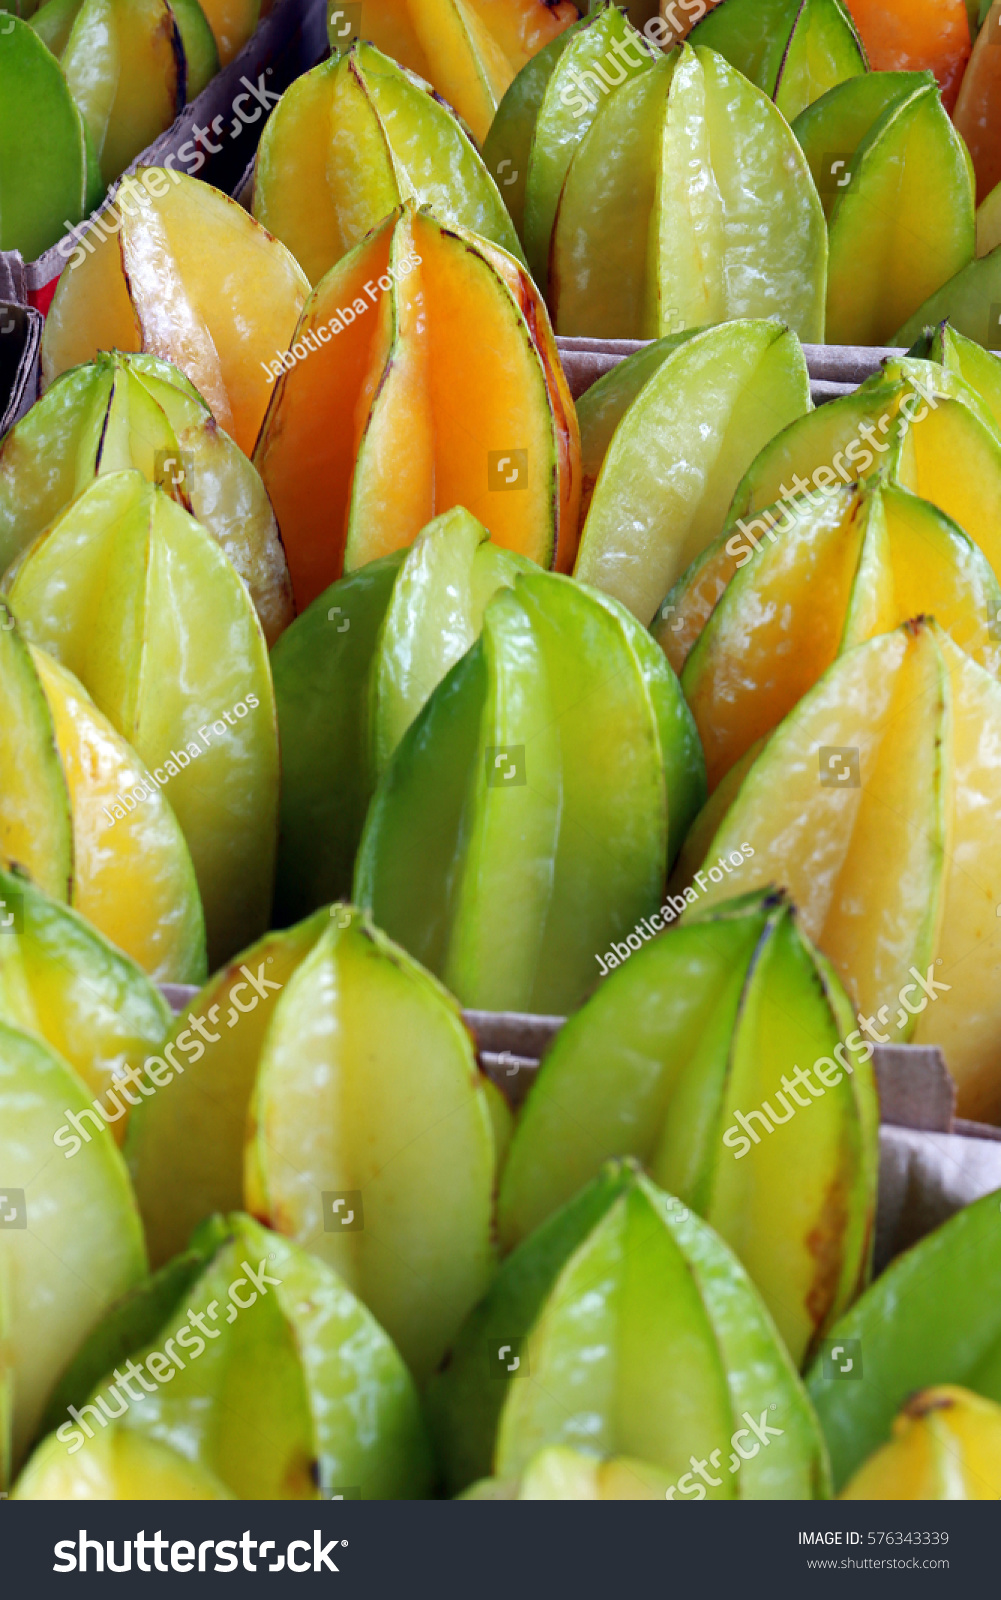 Carambola - a delicious delicacy of exotic countries